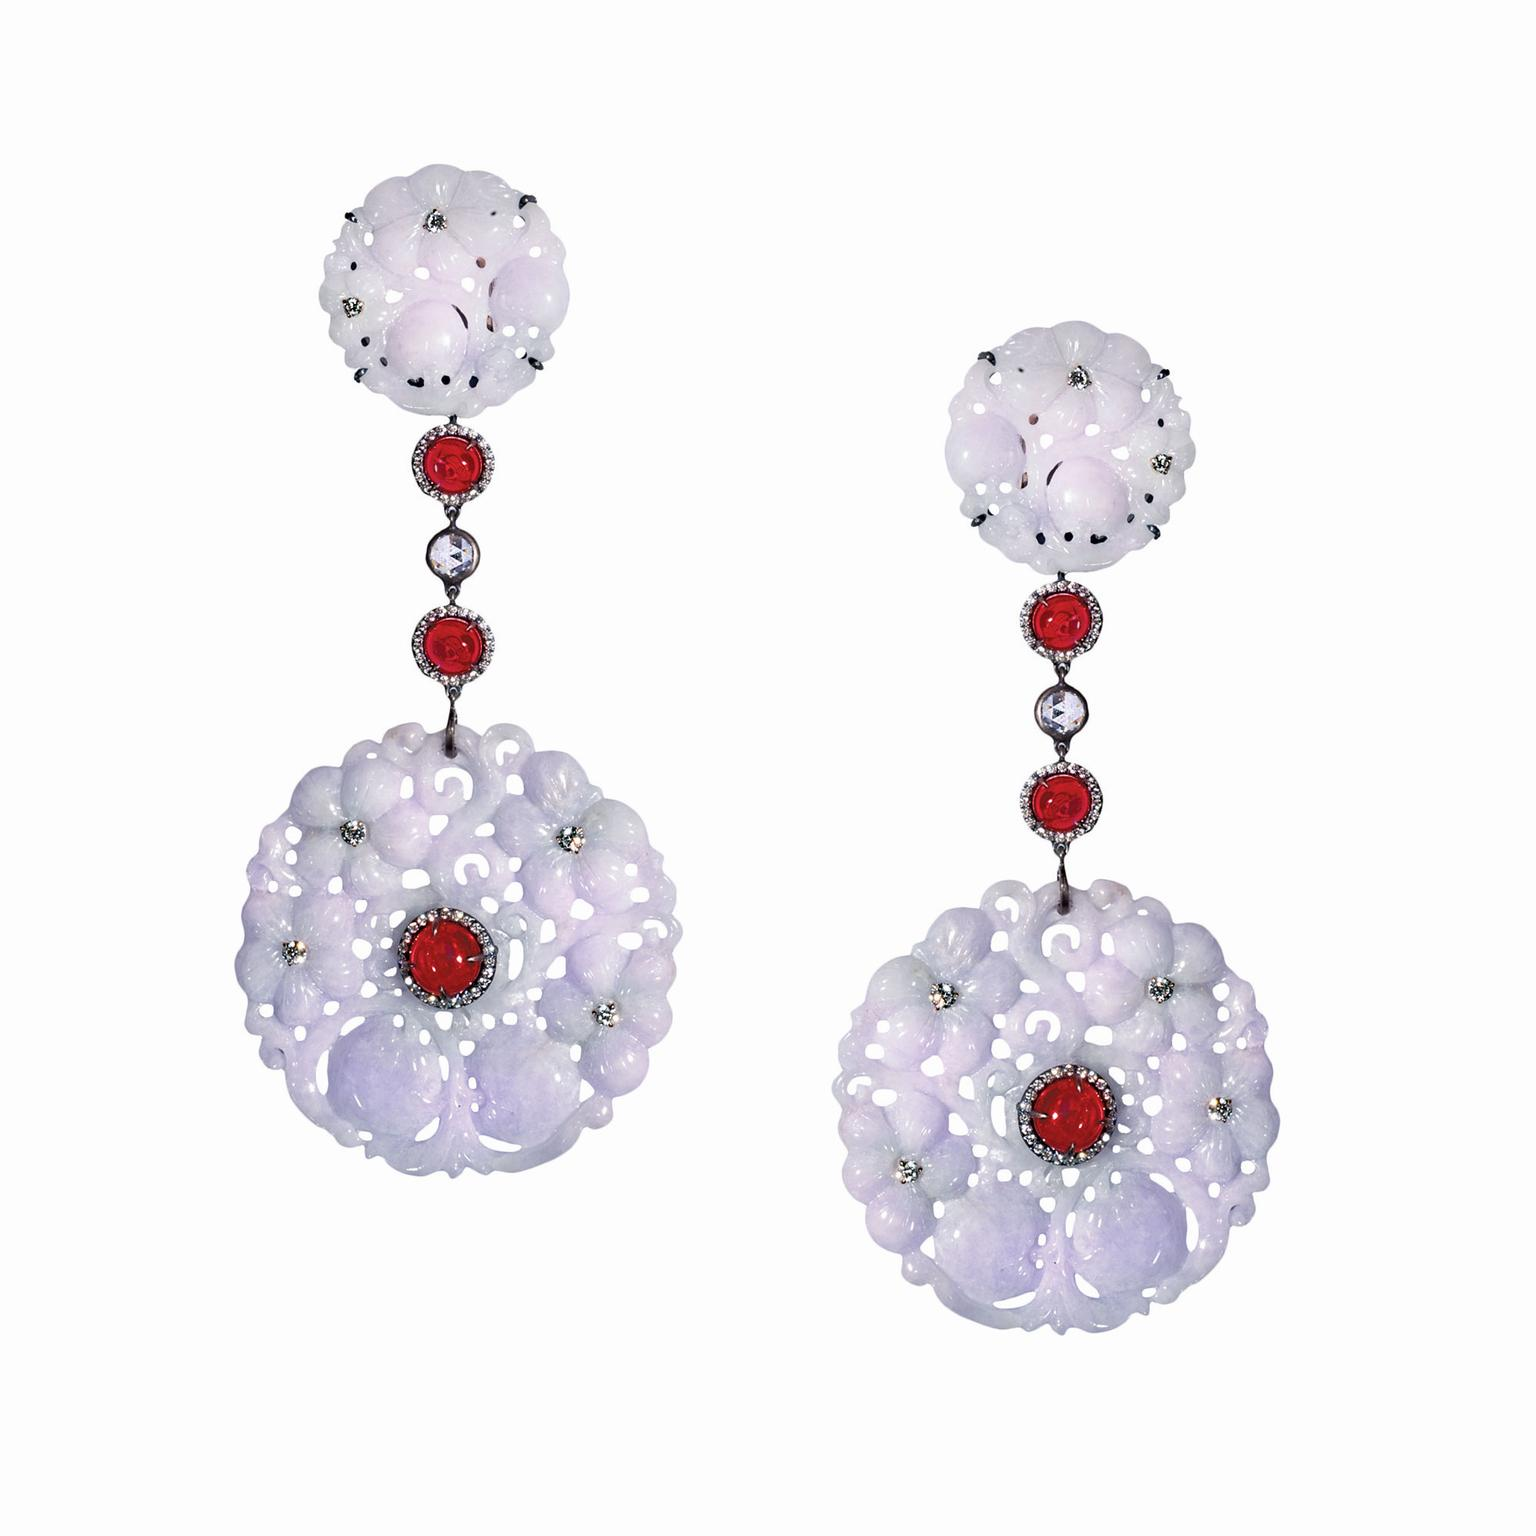 Suzanne Syz Empress Garden coloured jade earrings